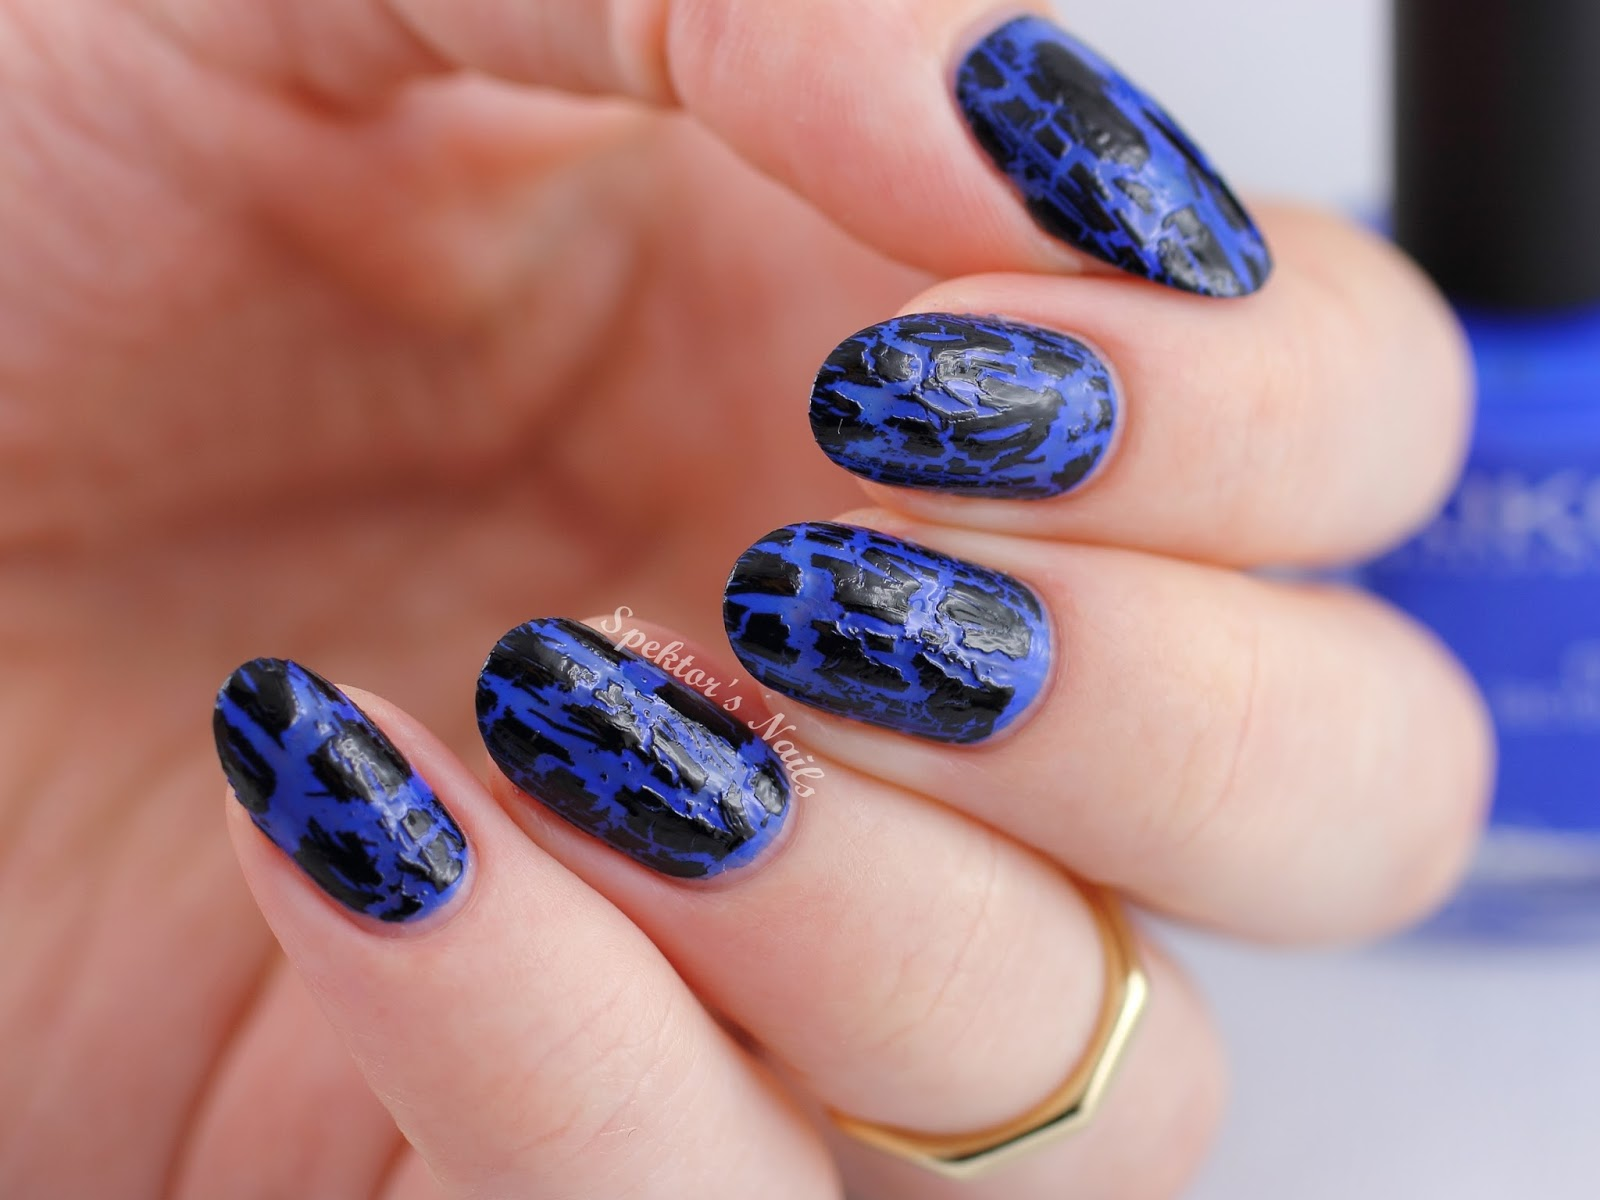 OPI - Black Shatter over KIKO - Electric Blue